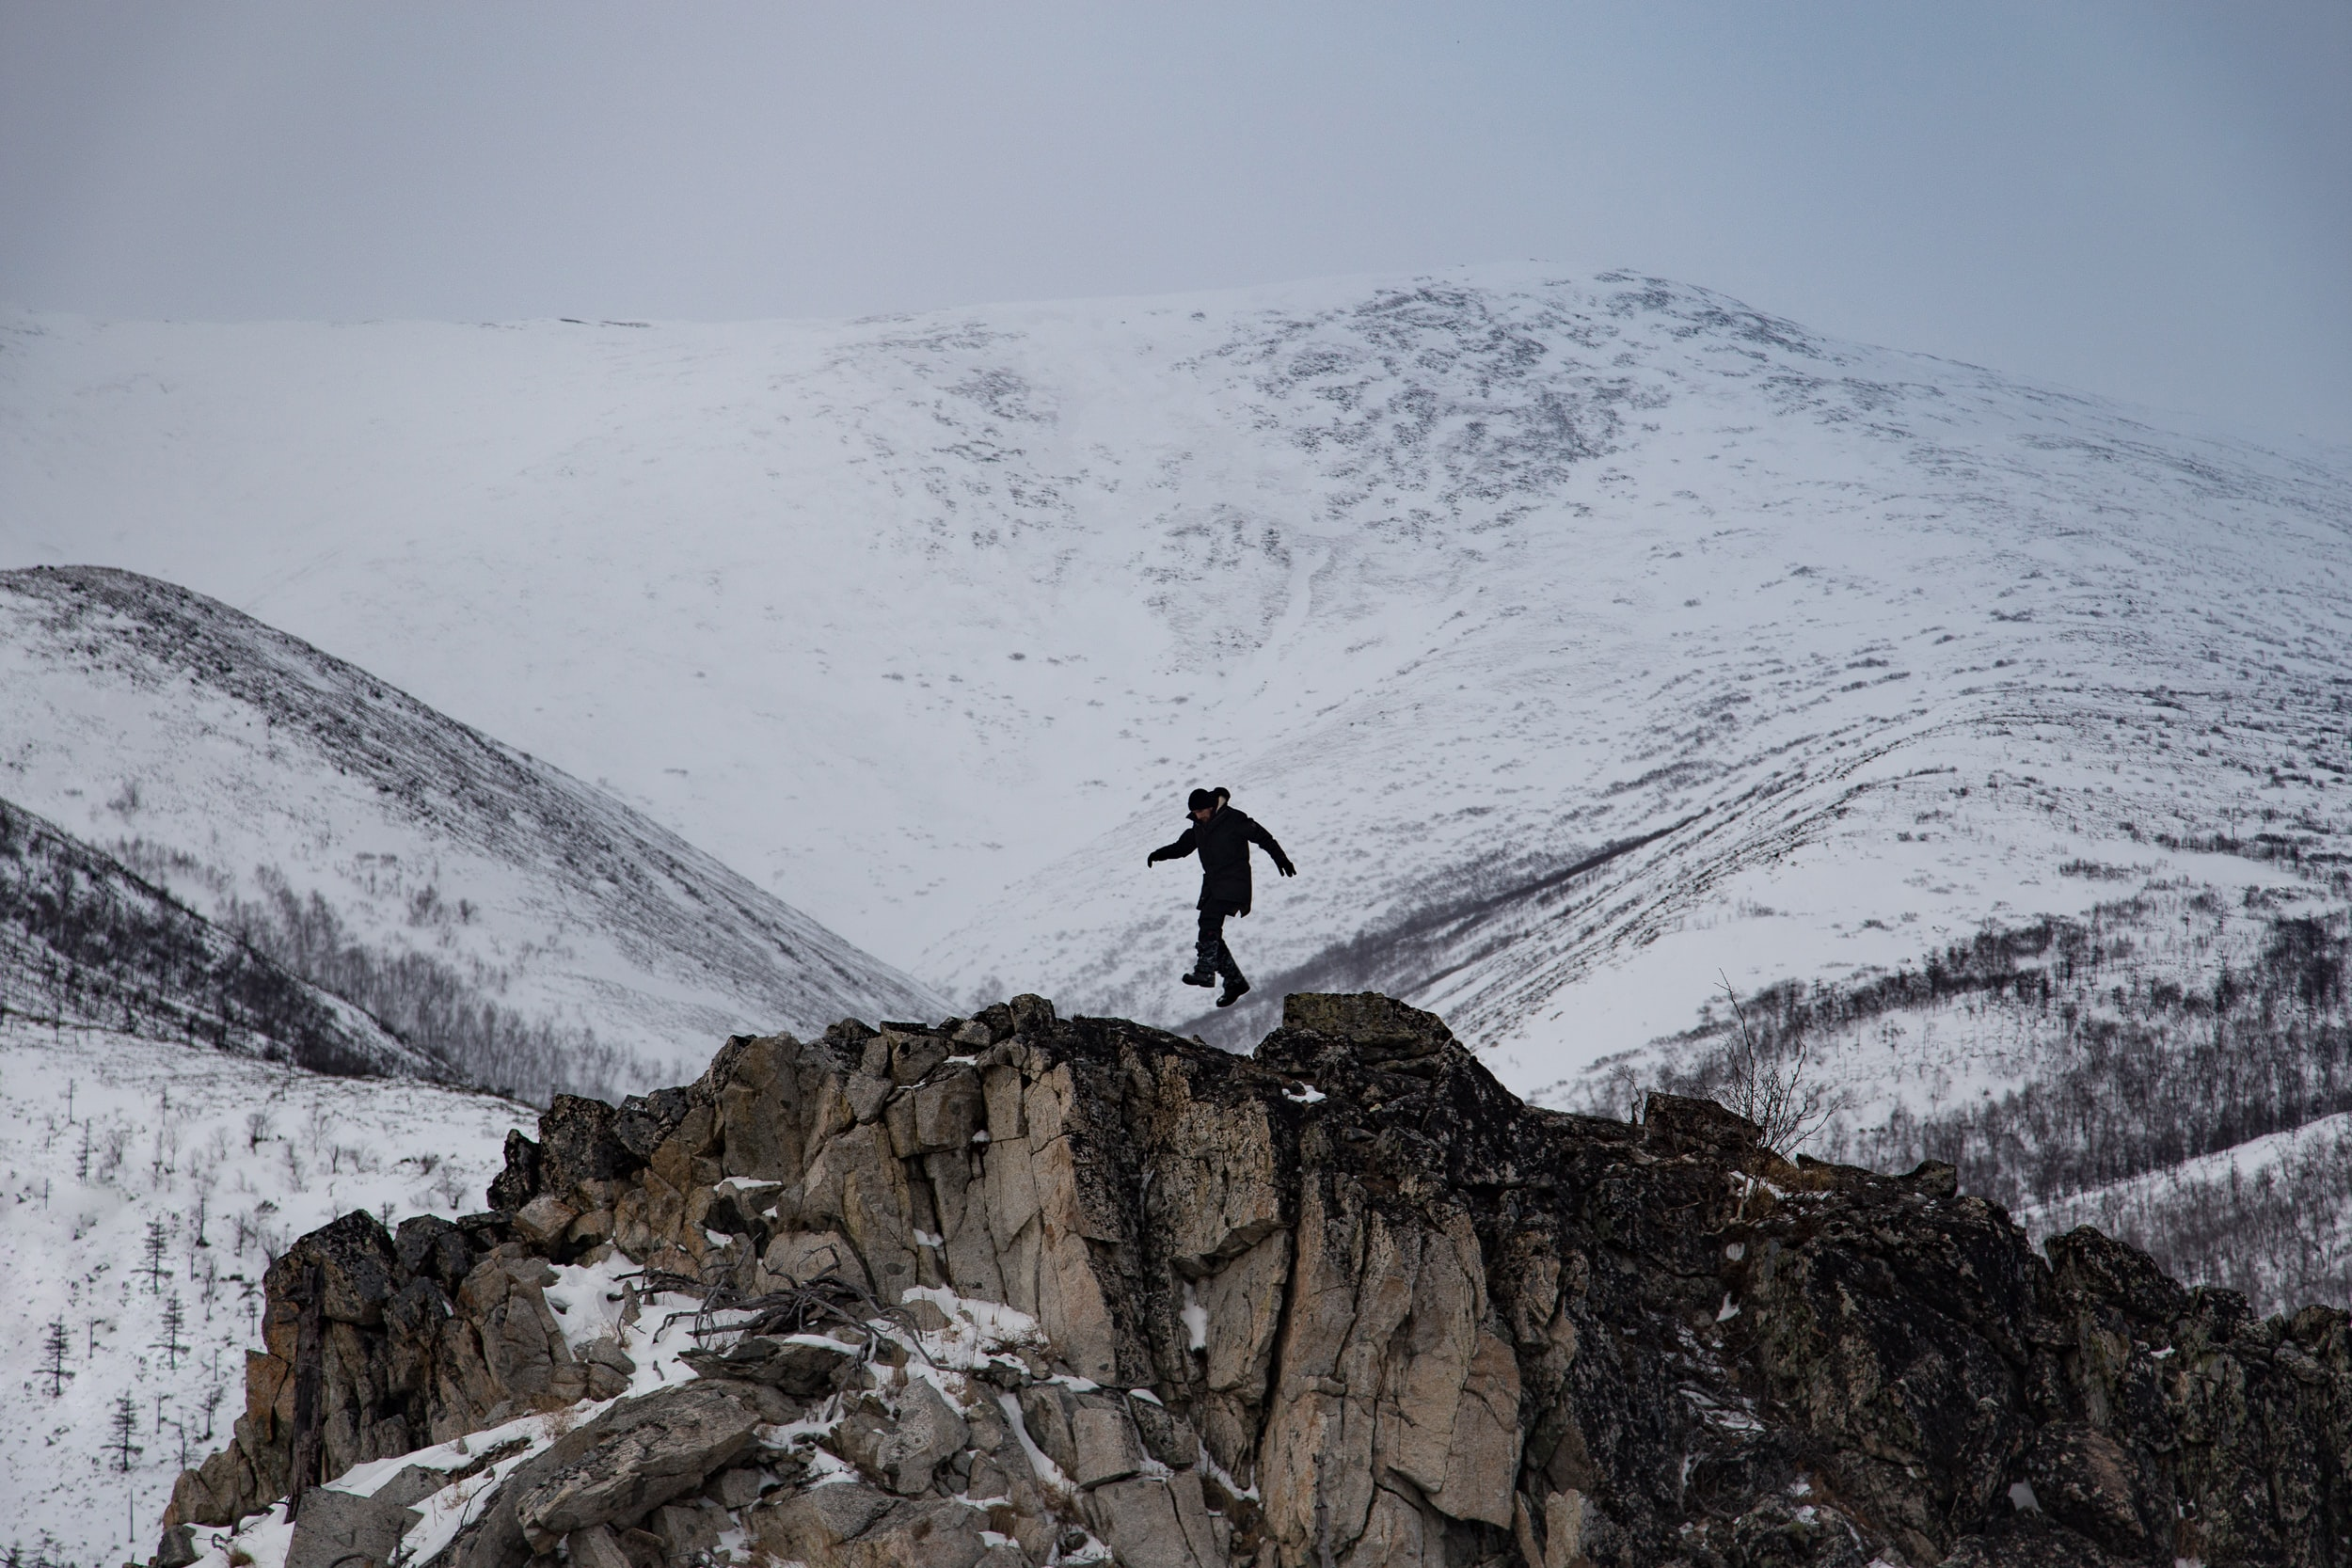 Person jumping on rocks on cliffs covered in snow